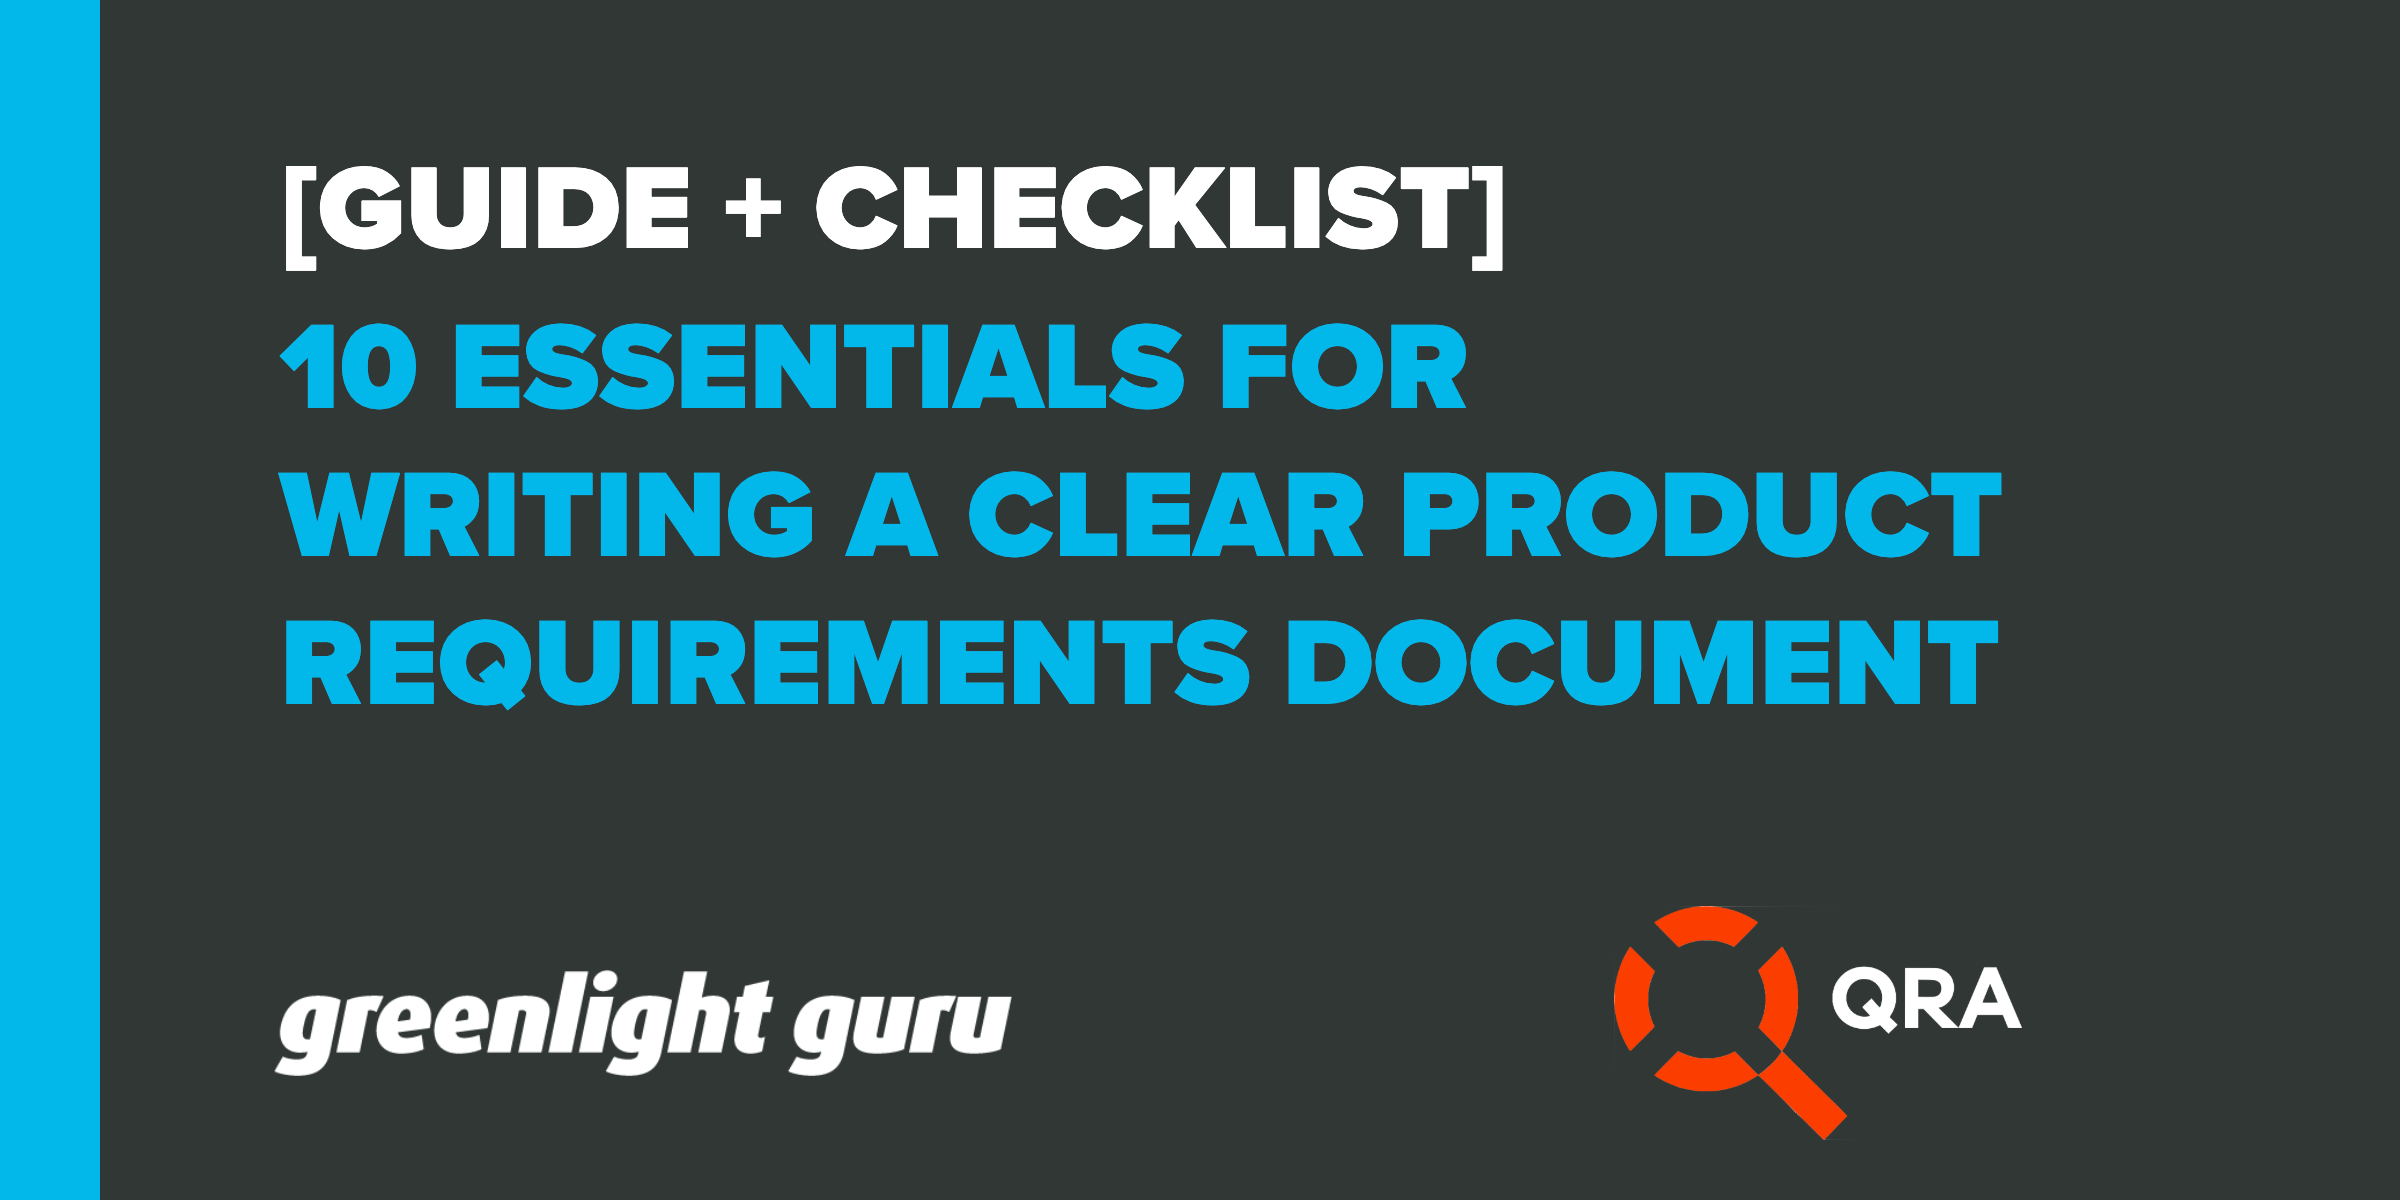 10 ESSENTIALS FOR WRITING A CLEAR PRODUCT REQUIREMENTS DOCUMENT+CHECKLIST (1)